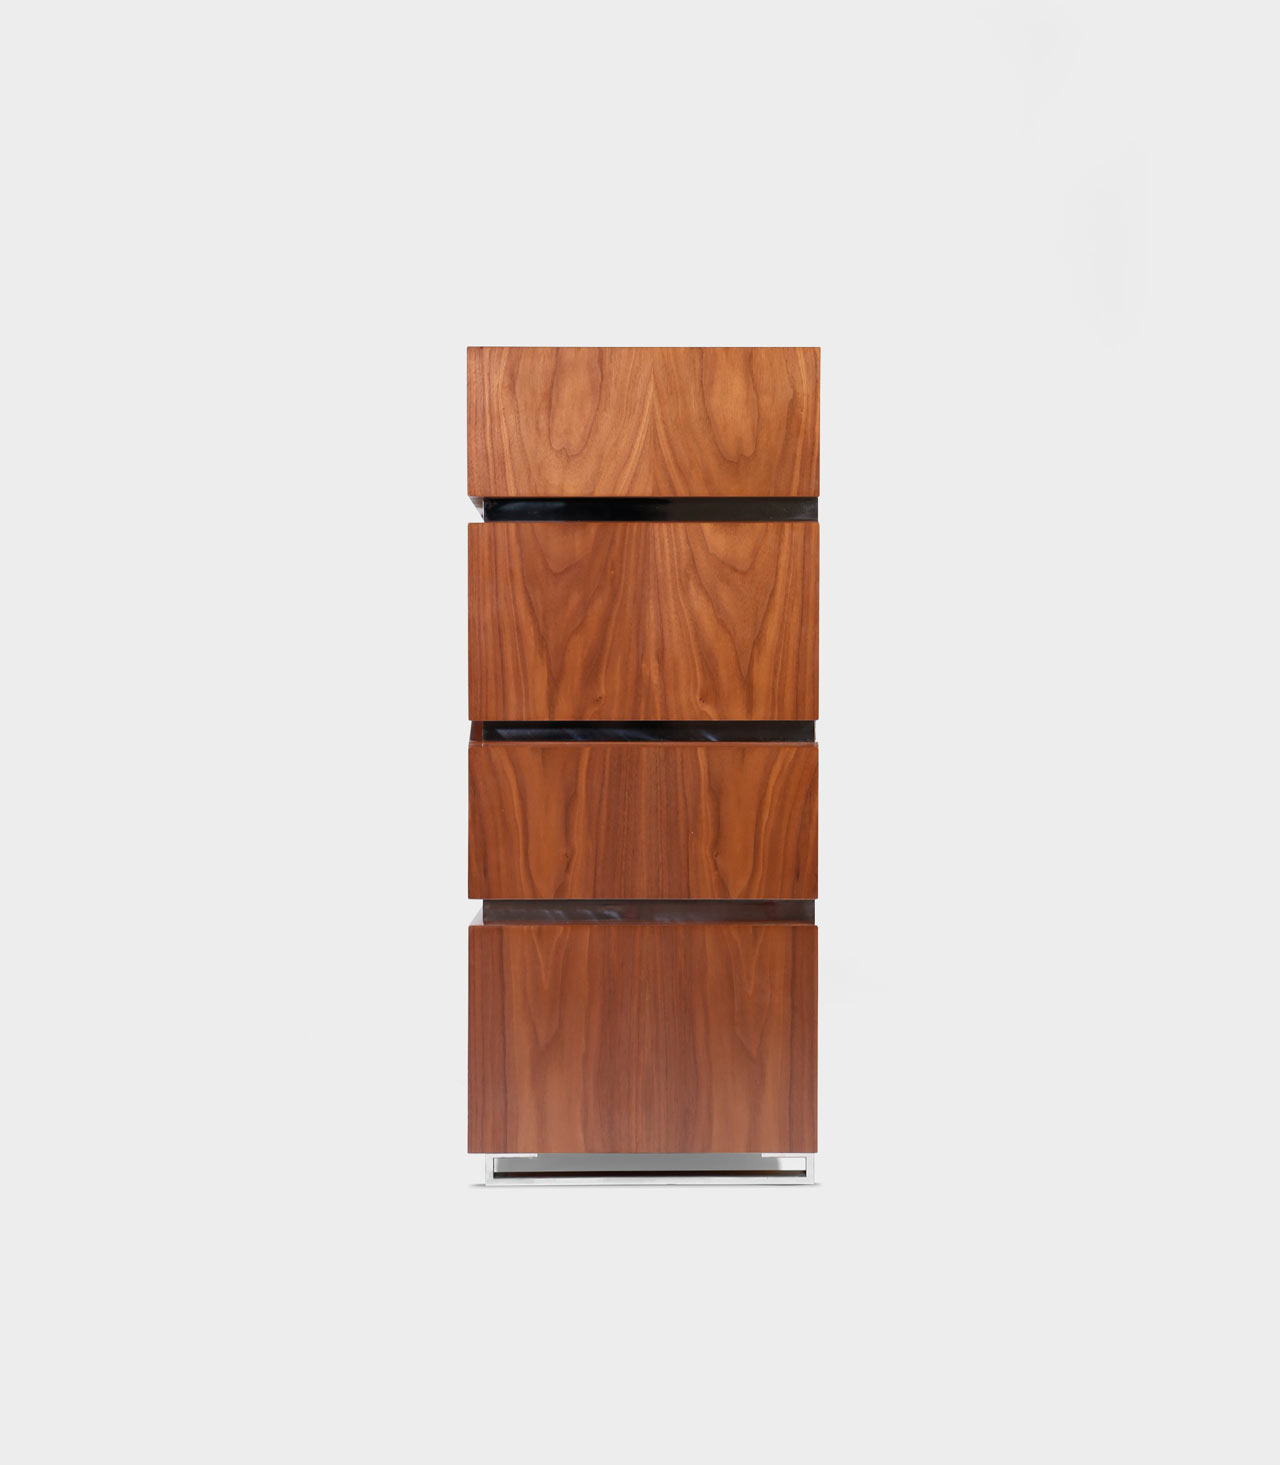 vence-picchio-furniture-storage-2